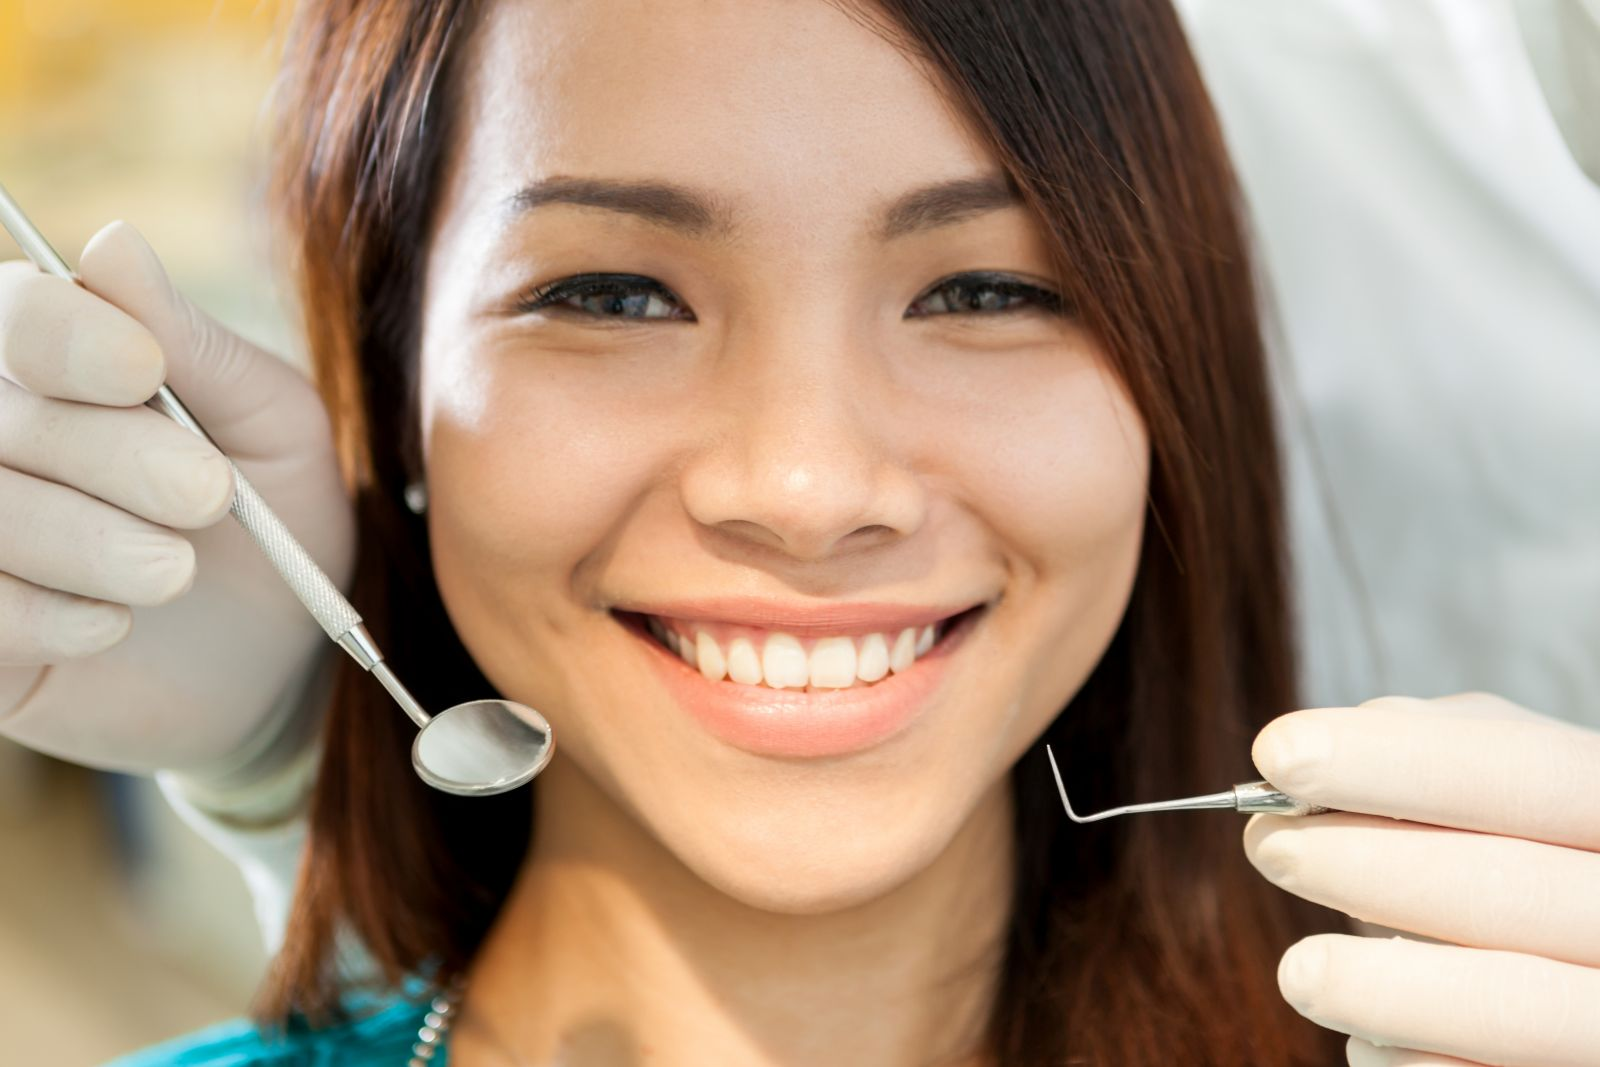 Professional dental cleanings by your Naperville dentist are an important way to keep your teeth healthy.